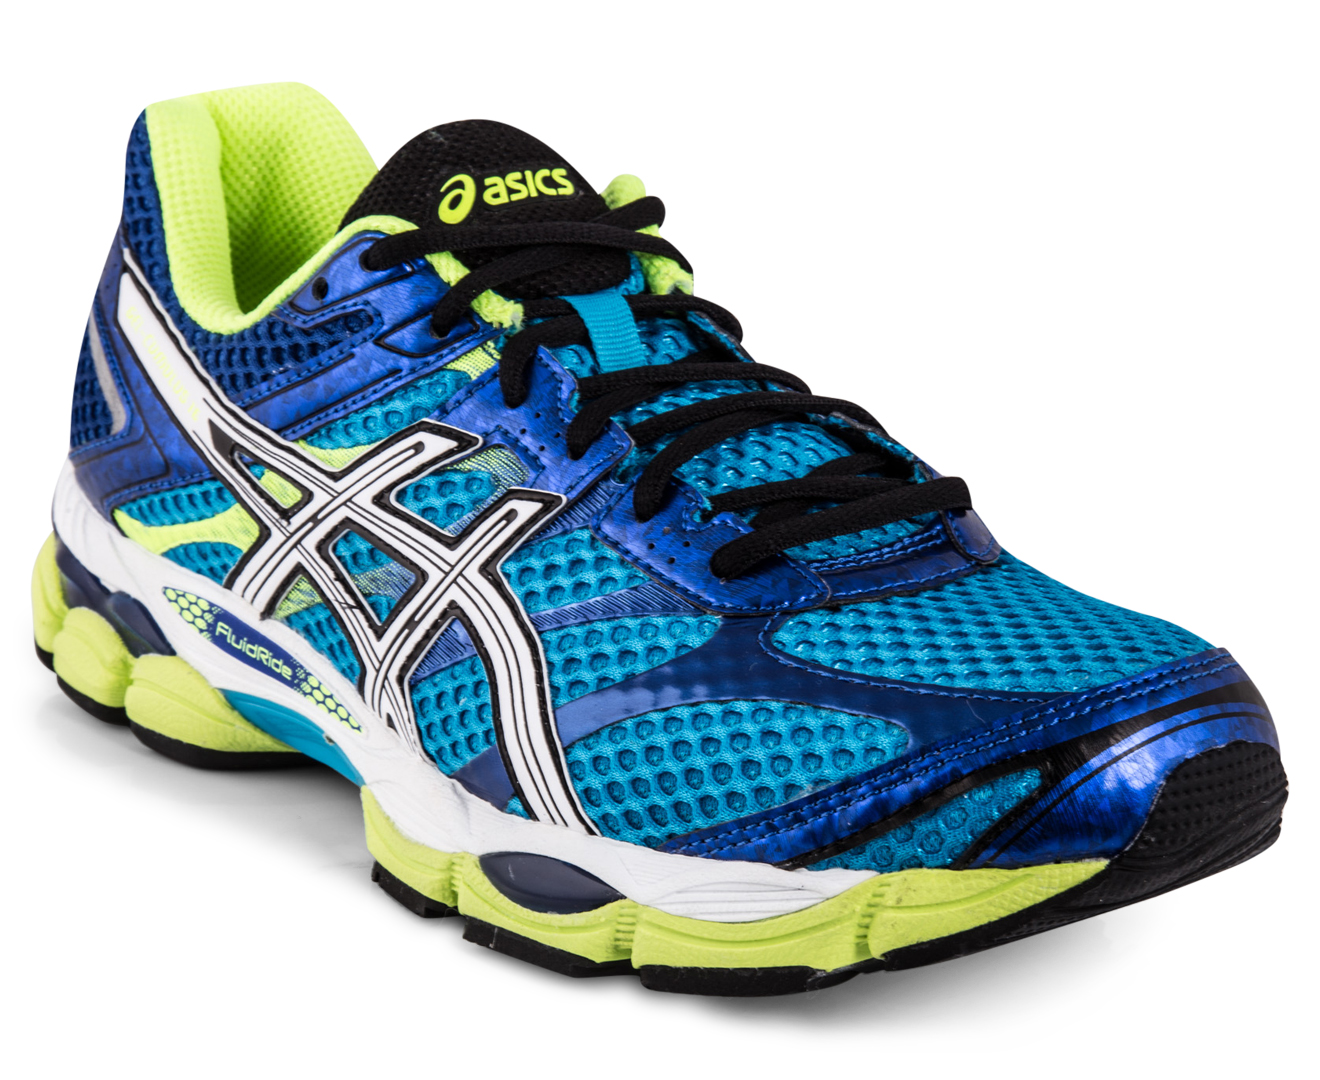 asics gel cumulus 15 heel drop